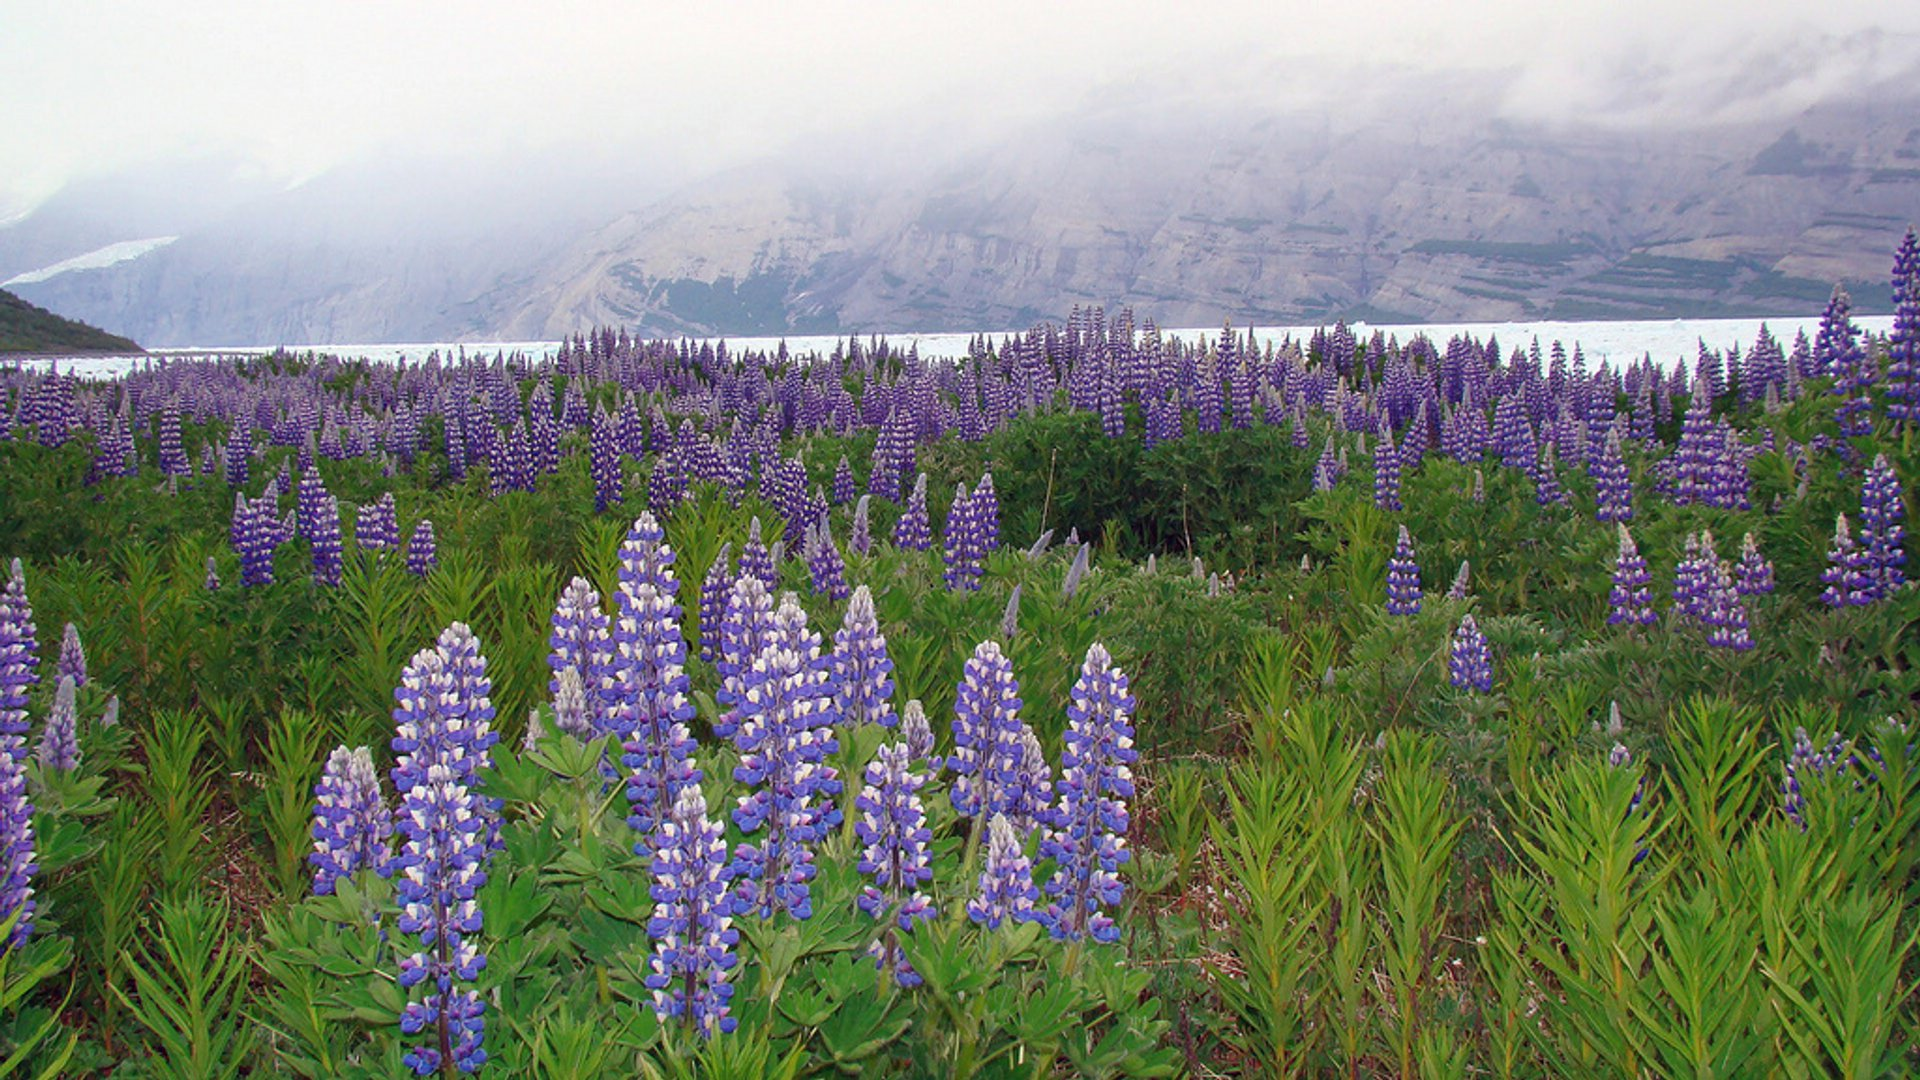 Lupine Fields in Bloom in Alaska - Best Season 2020